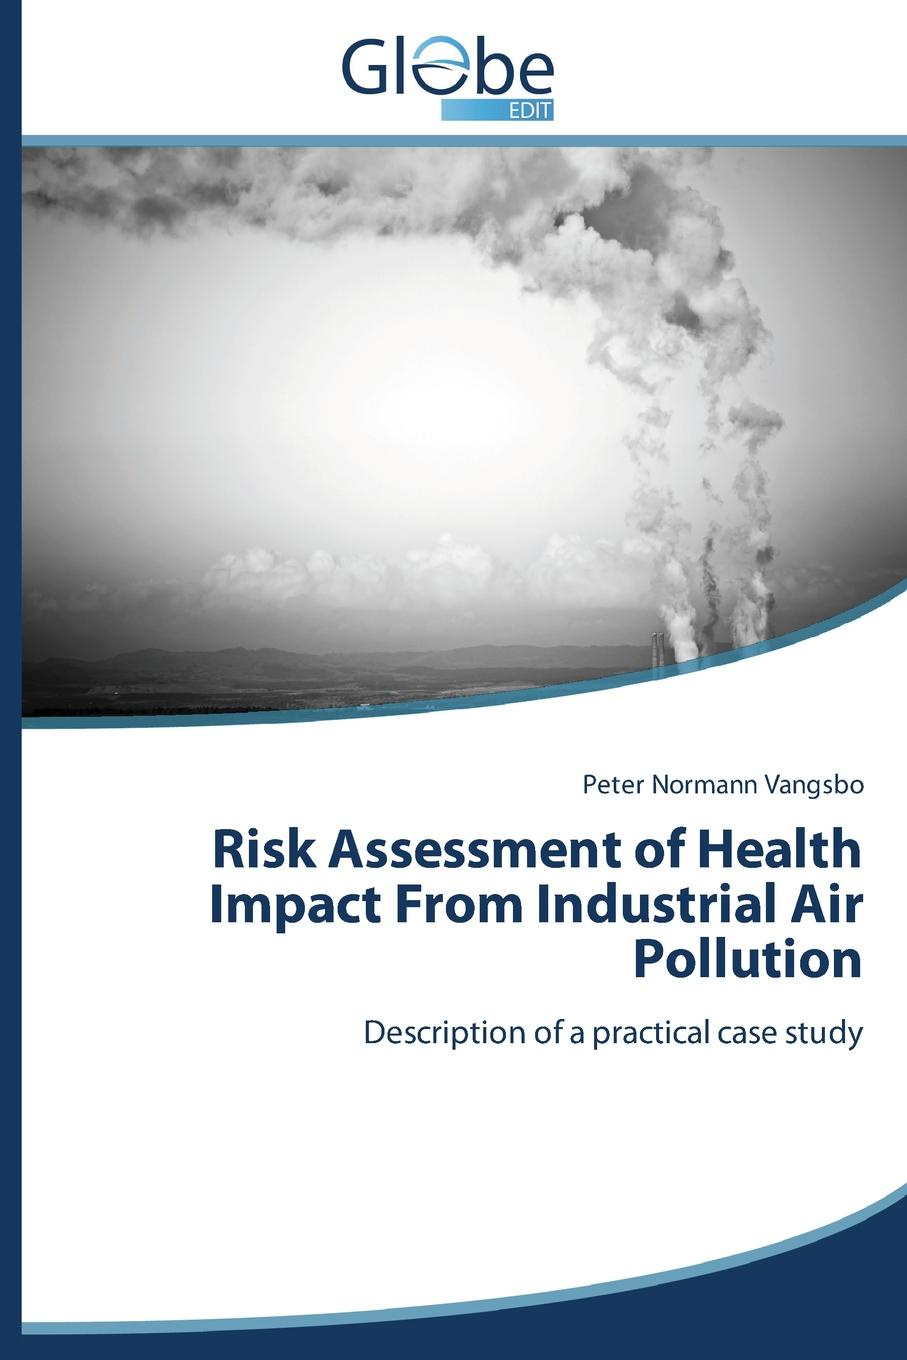 Vangsbo Peter Normann Risk Assessment of Health Impact From Industrial Air Pollution laura robinson a practical guide to toxicology and human health risk assessment